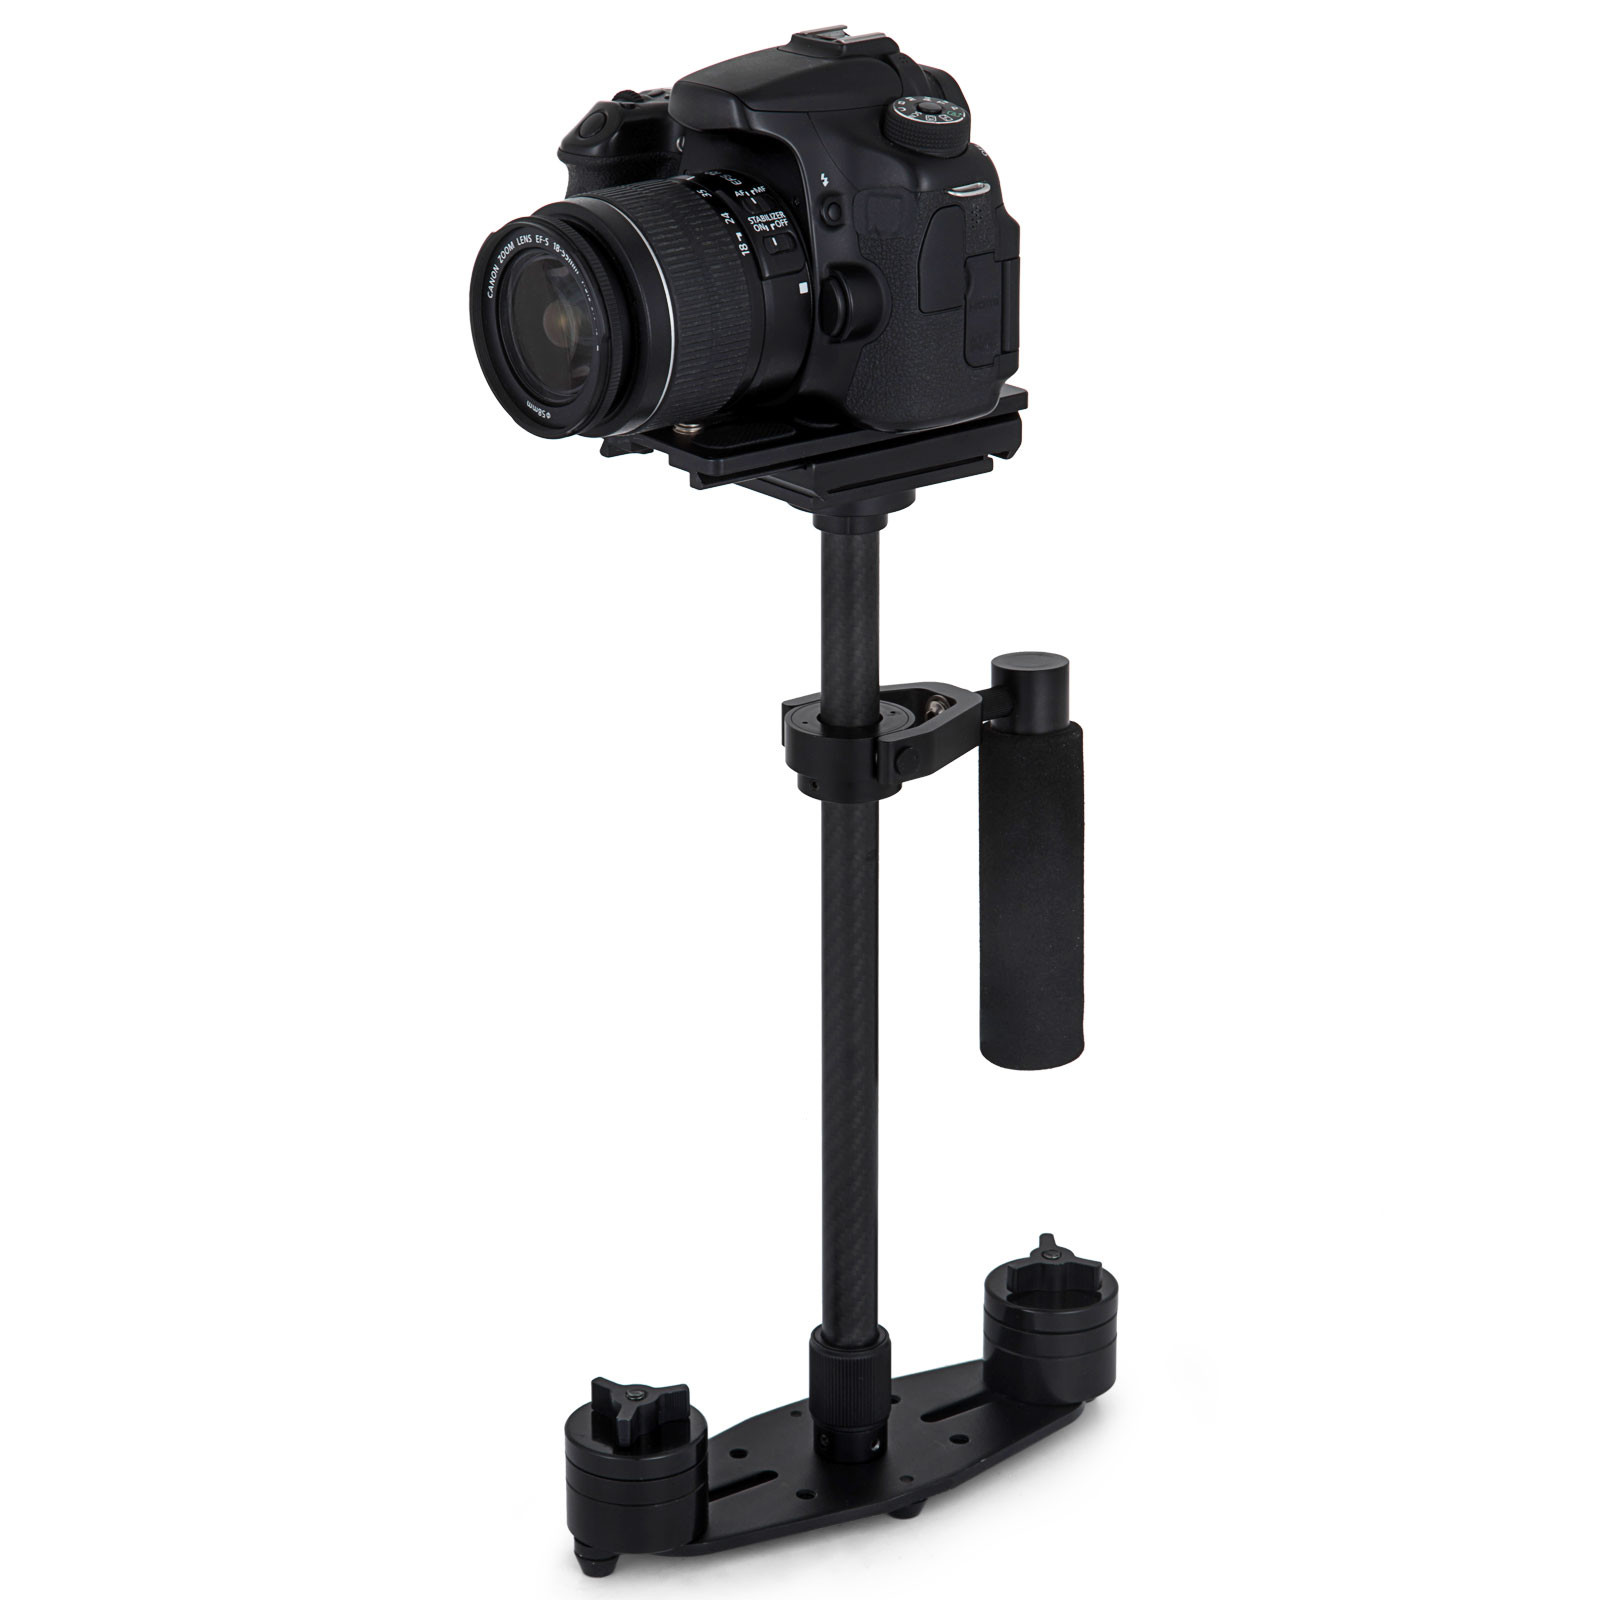 S60T-S60N-Handheld-Steady-Stabilizer-360-For-DSLR-Canon-Camera thumbnail 29